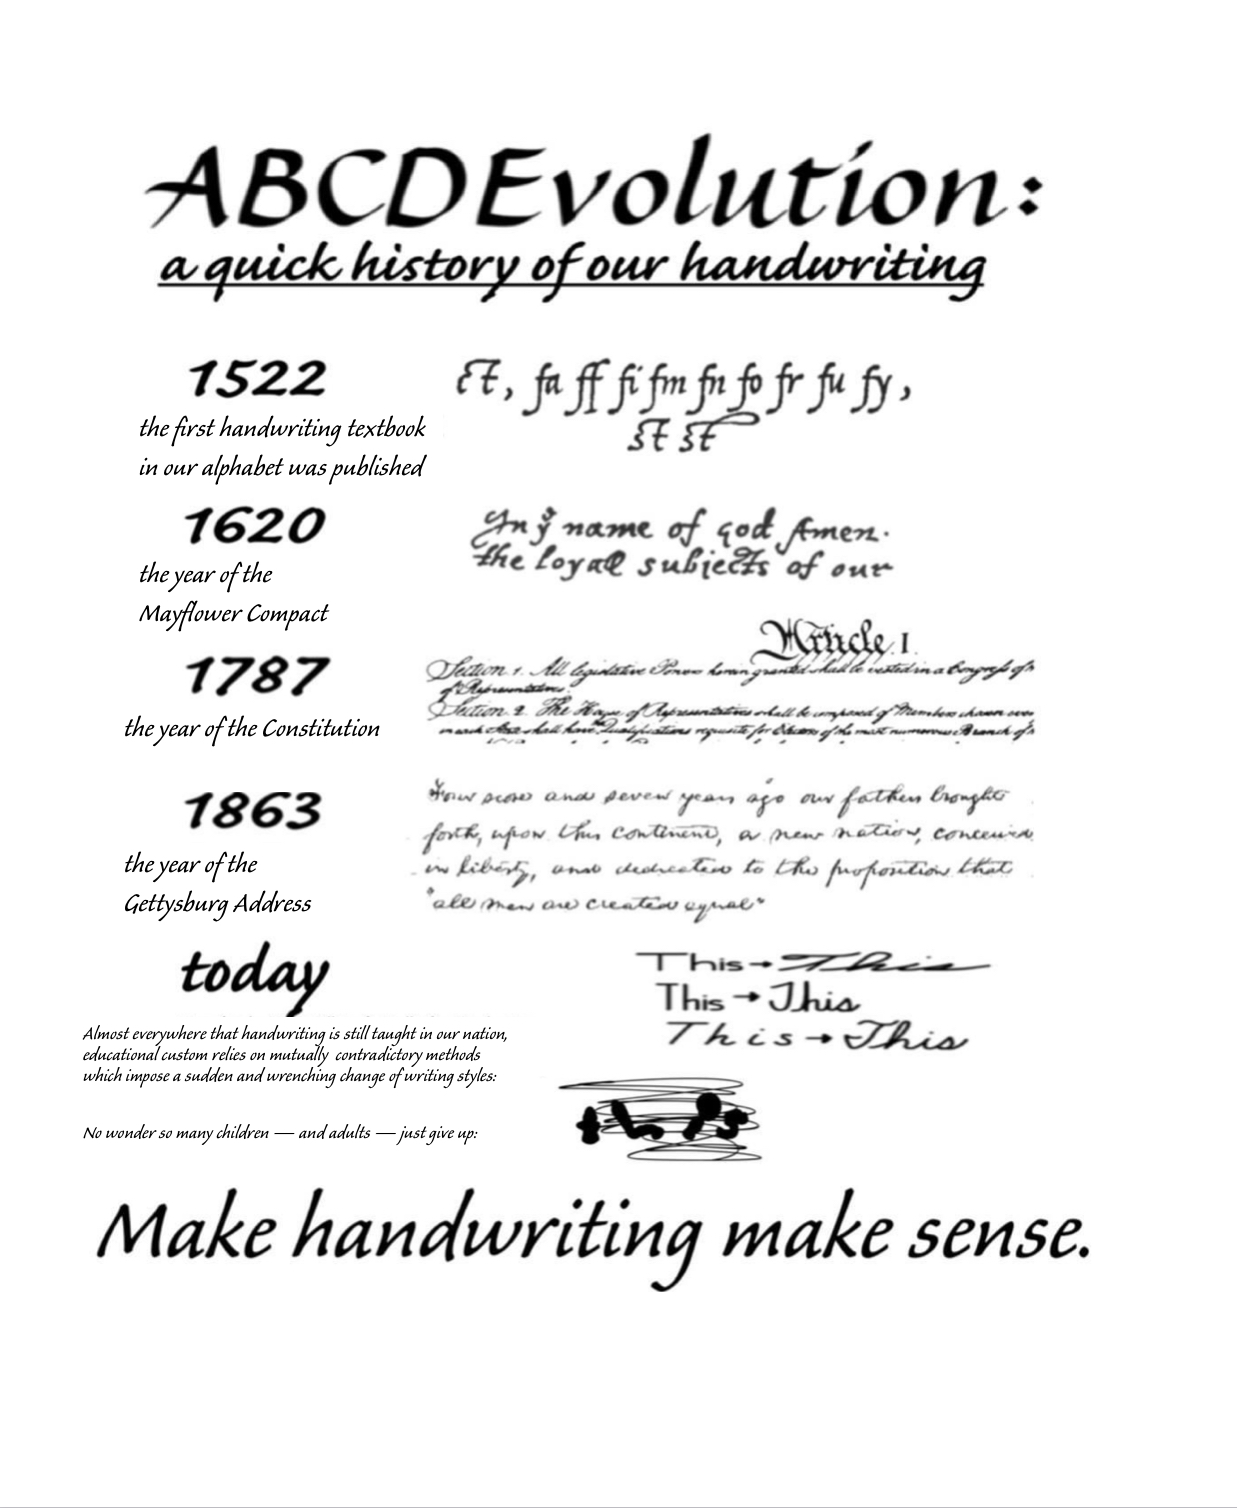 To chart if successive stages in the history of handwriting over the past 500 years